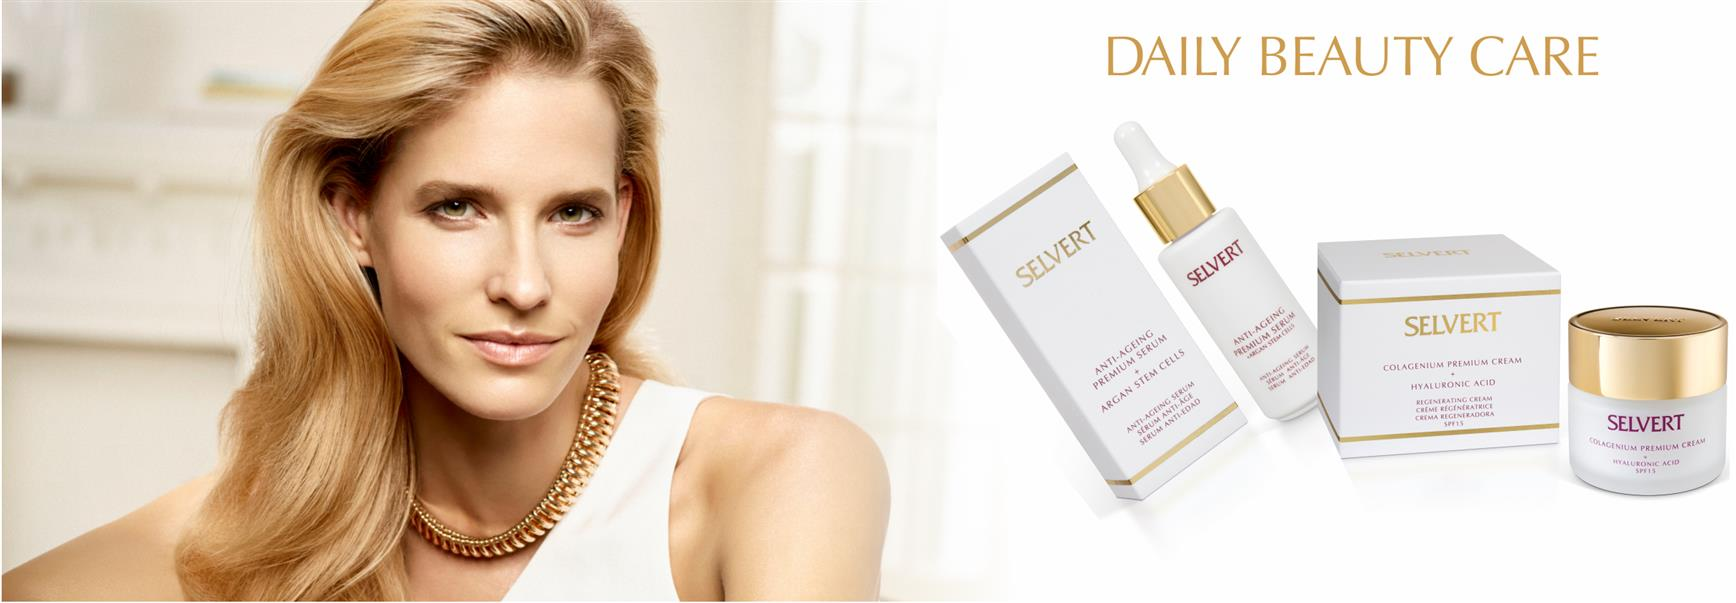 Selvert Thermal DAILY BEAUTY CARE